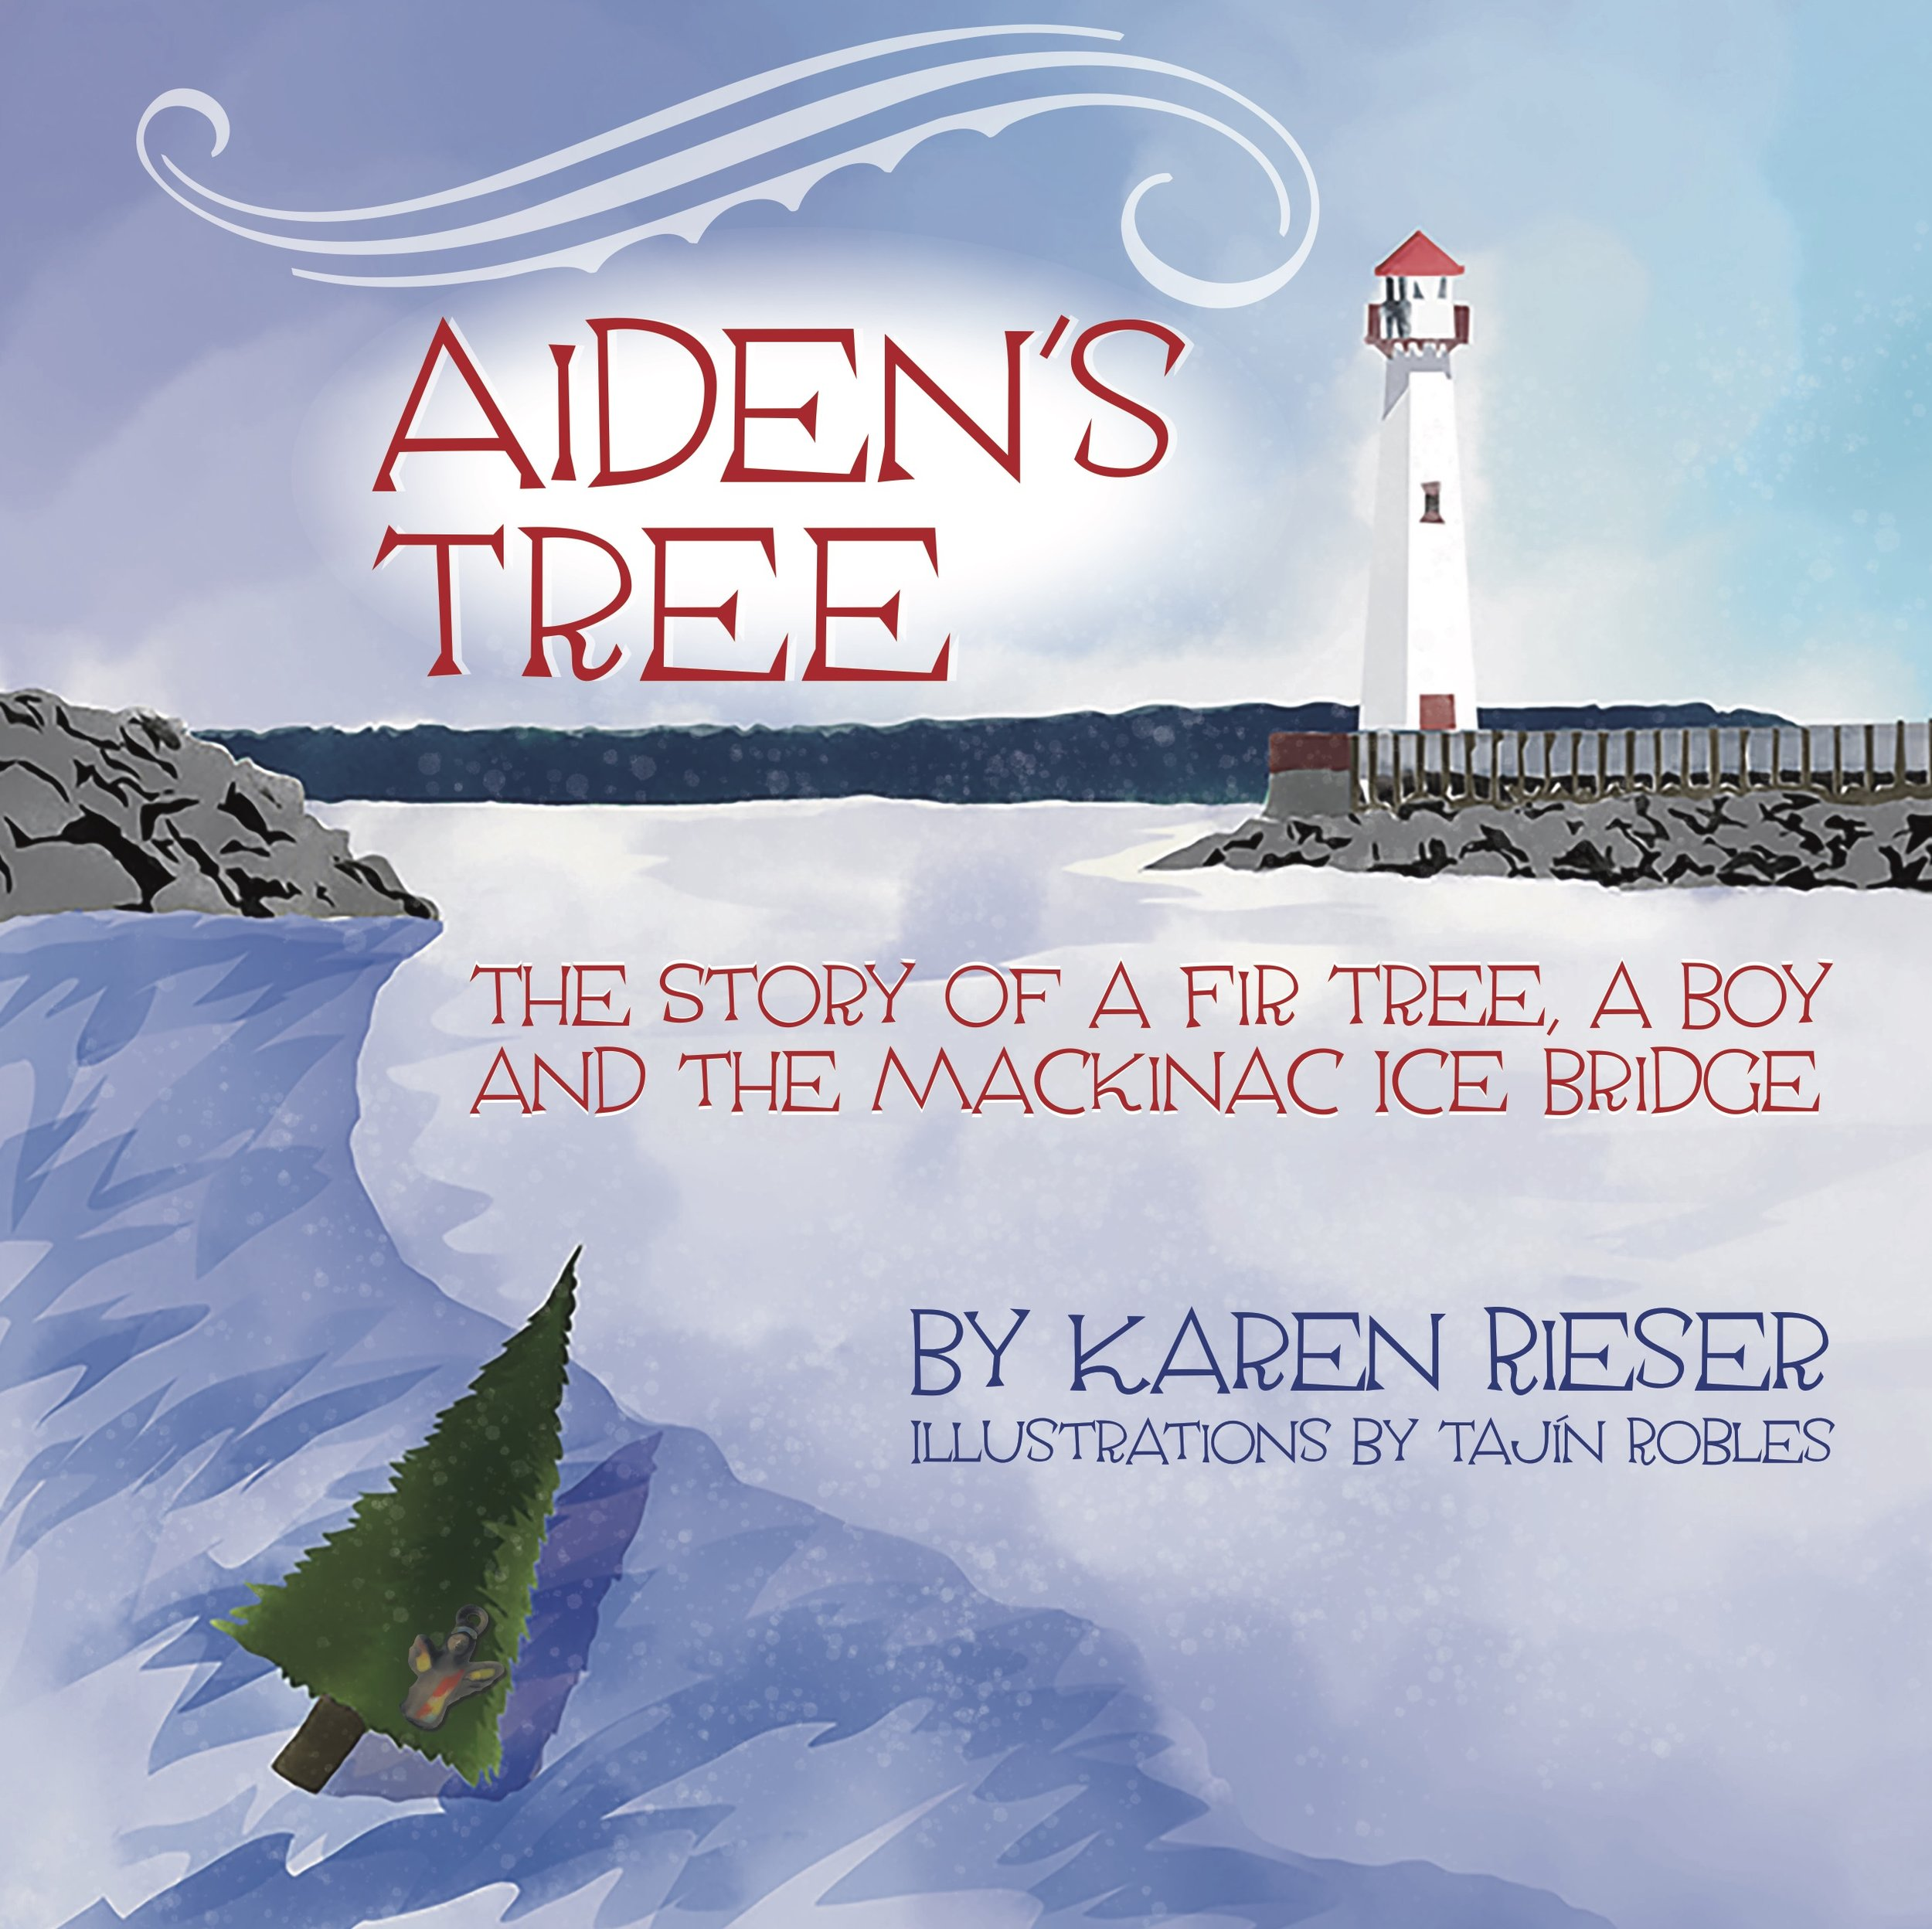 - A Christmas tree is brought into Aiden's home with great pomp and ceremony. It lights up the darkness of winter, fills the home with a cold piney scent, glistens with ornaments and is the protector of all gifts beneath it.Aiden's Tree is the story of a Michigan fir — from seedling to Christmas tree to a marker on the Mackinac Ice Bridge and more.More about the bookBuy the book on Amazon